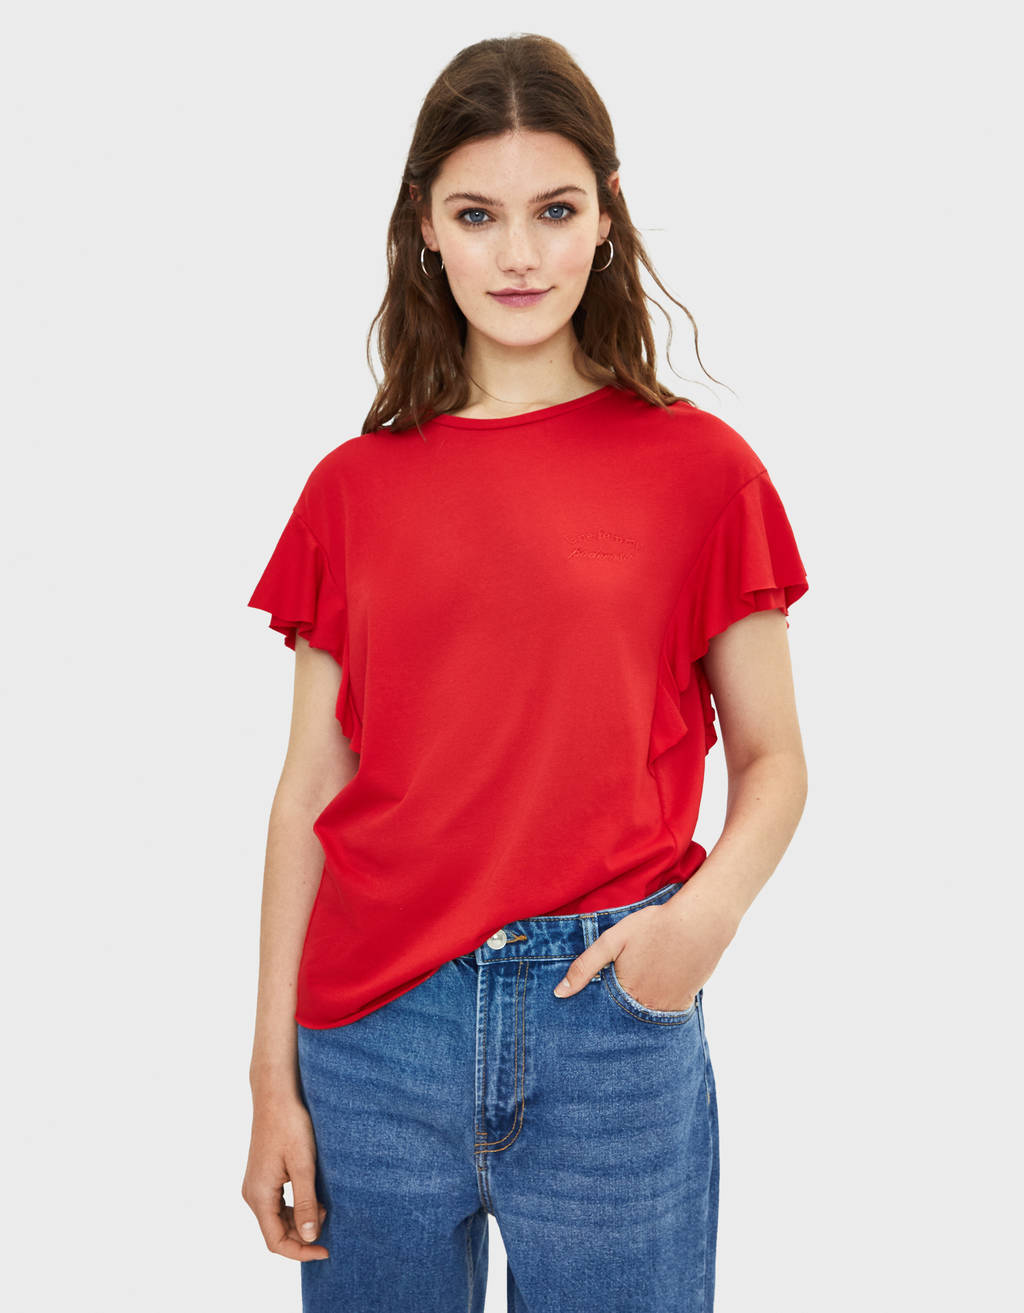 T-shirt with ruffled sleeves